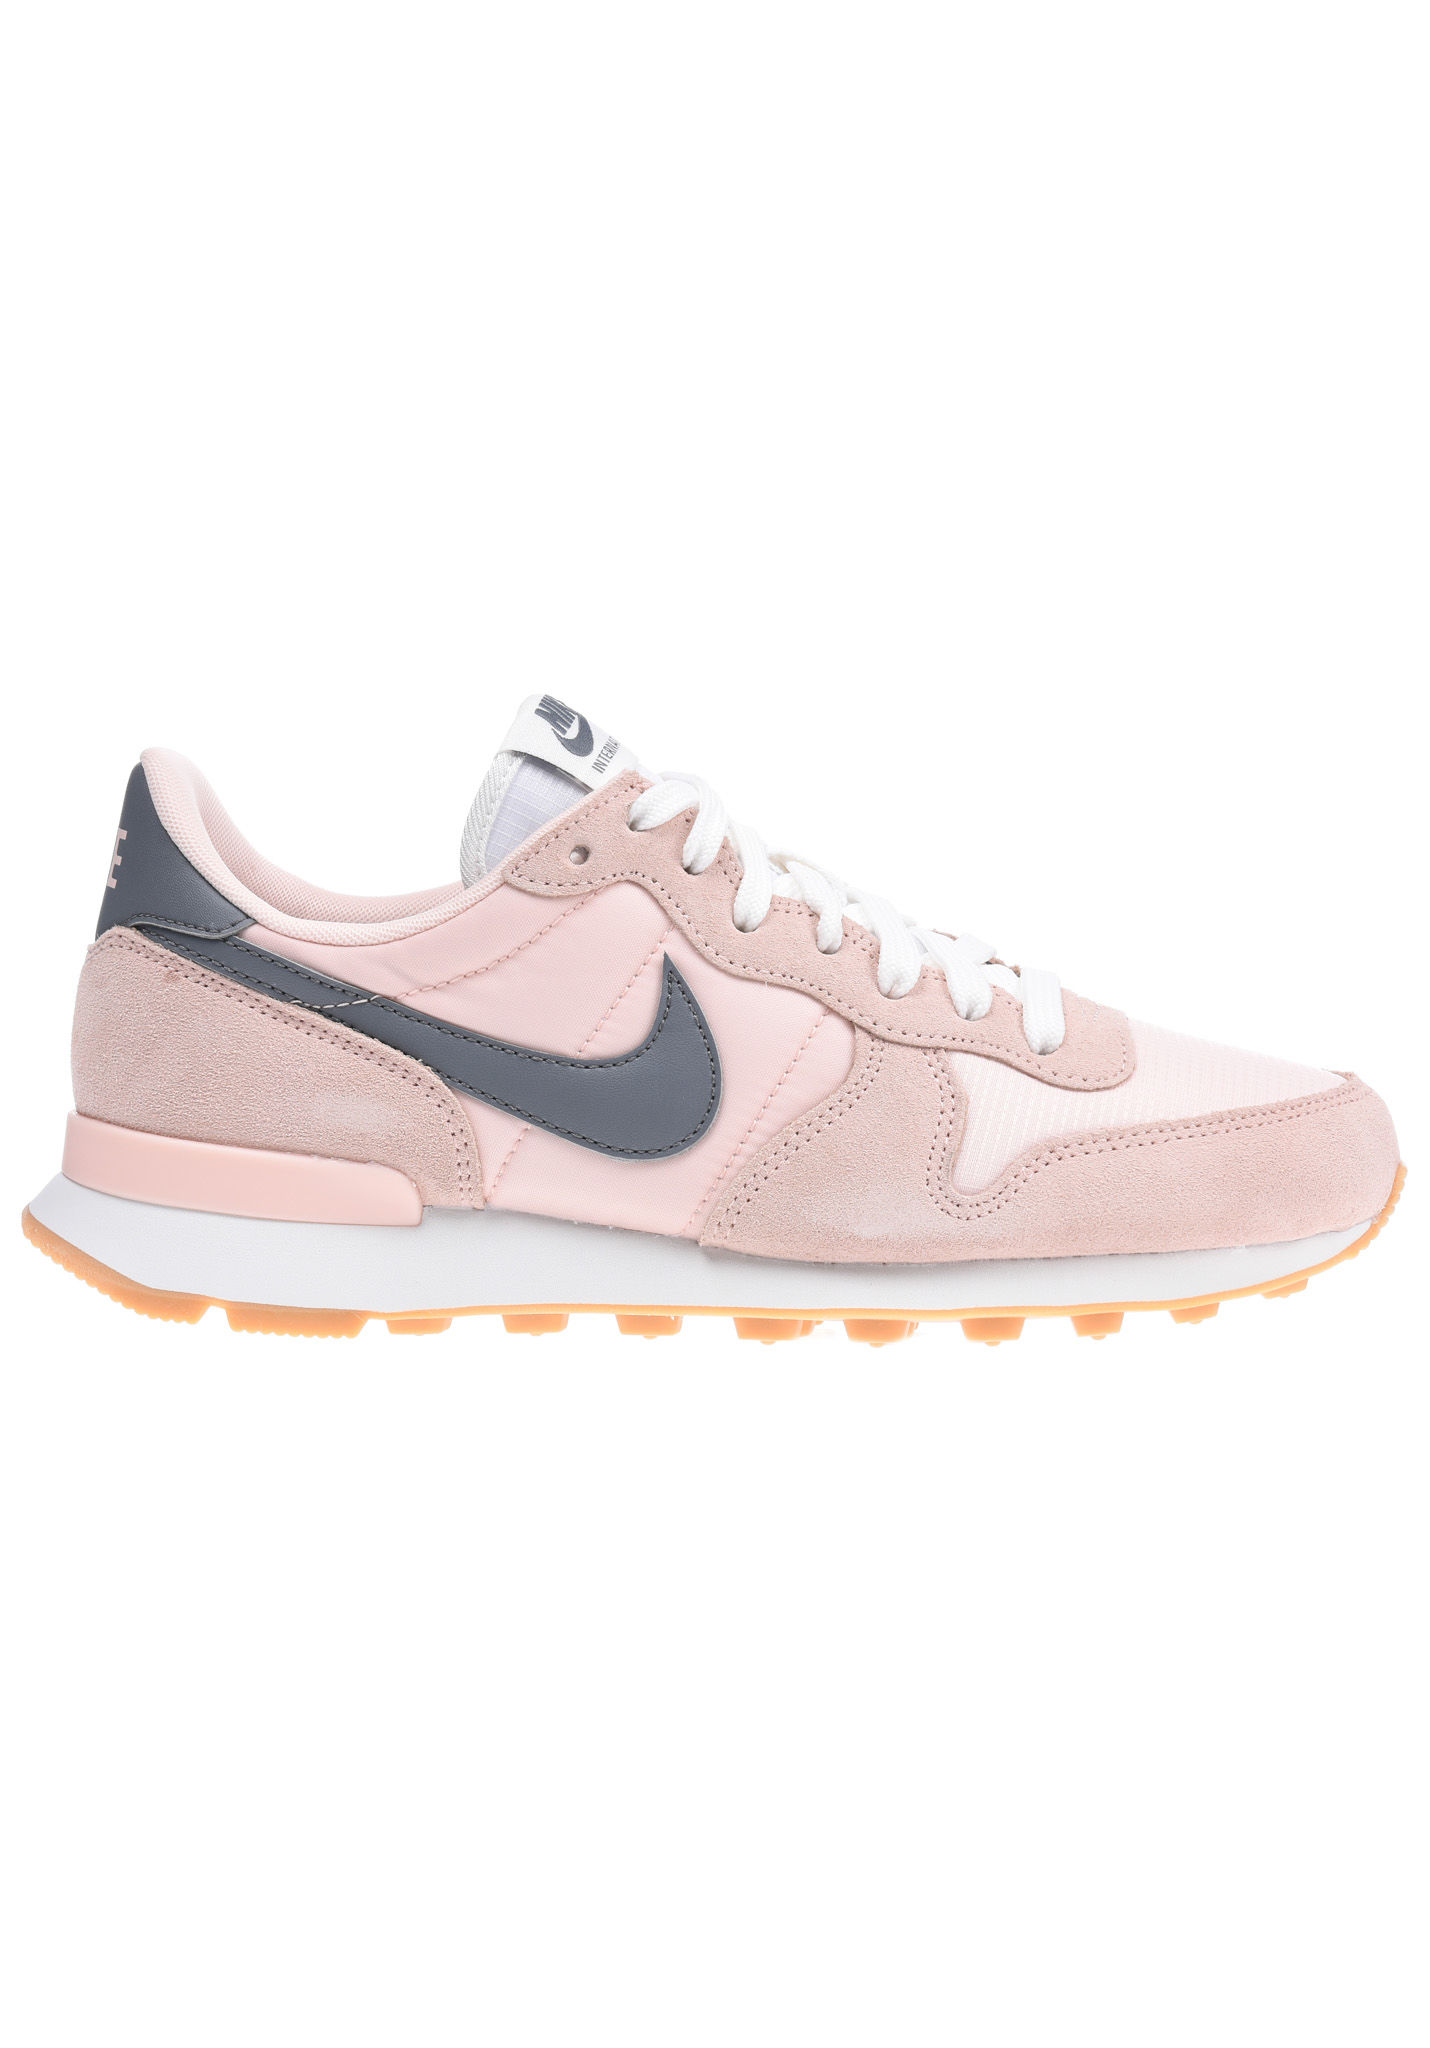 nike internationalist womens orange pink. Black Bedroom Furniture Sets. Home Design Ideas